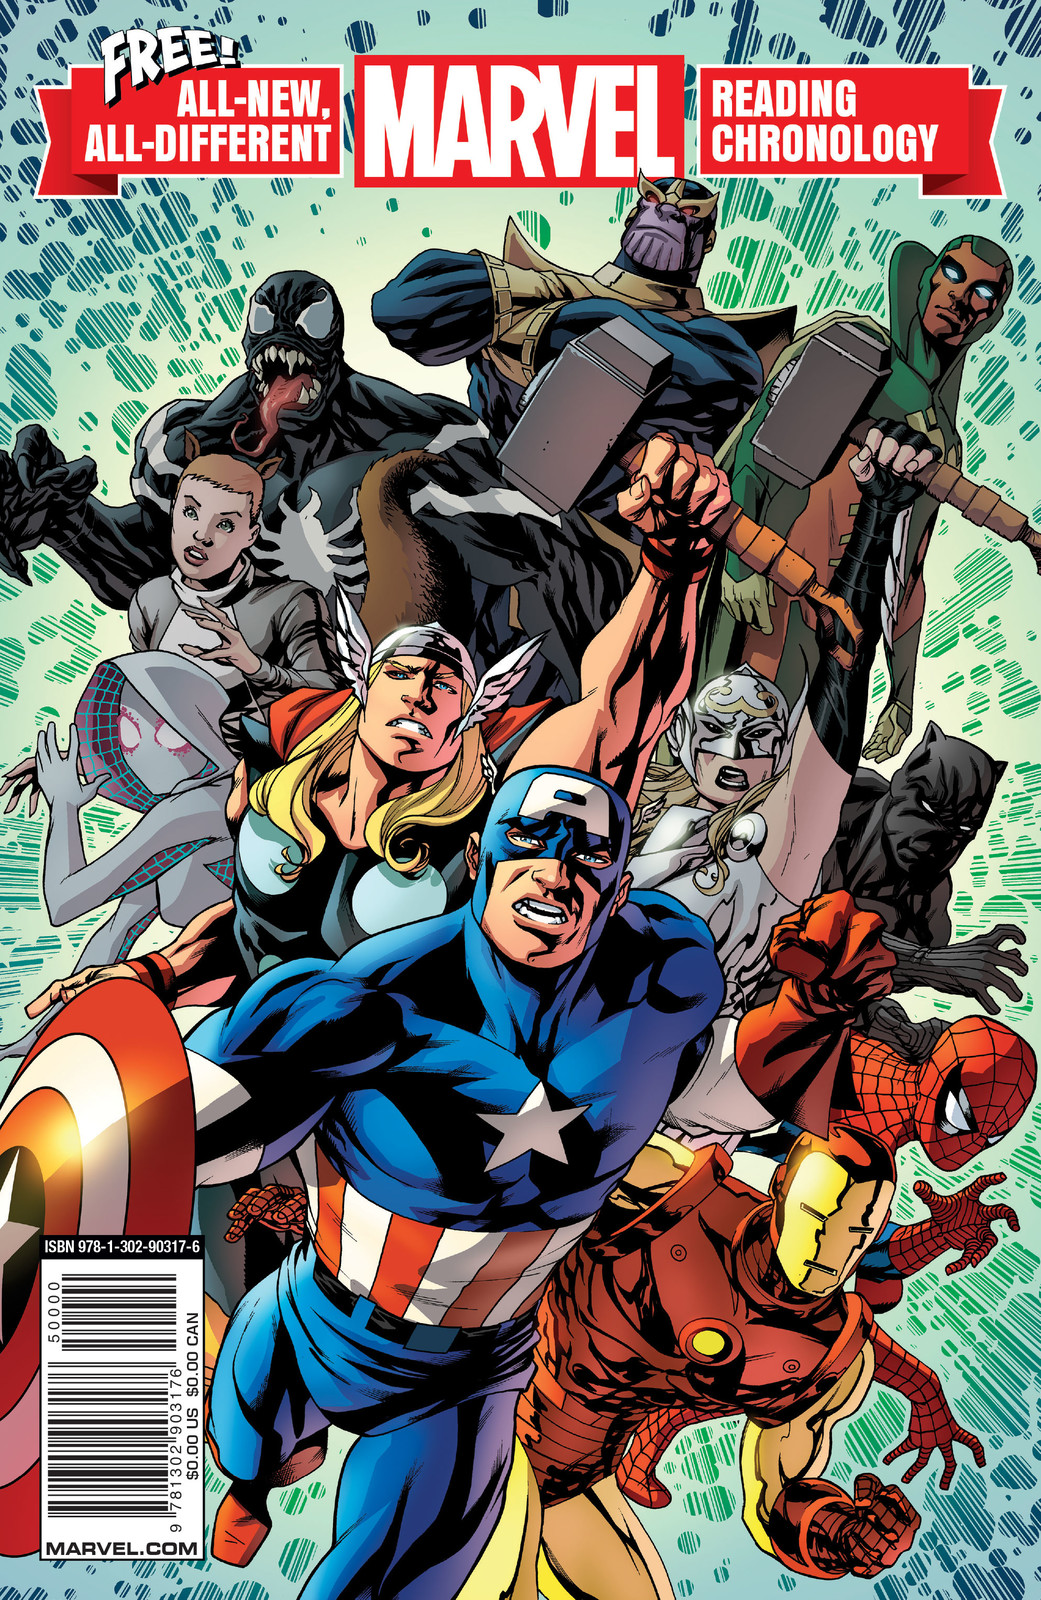 Marvel's All-New, All-Different Marvel Reading Chronology